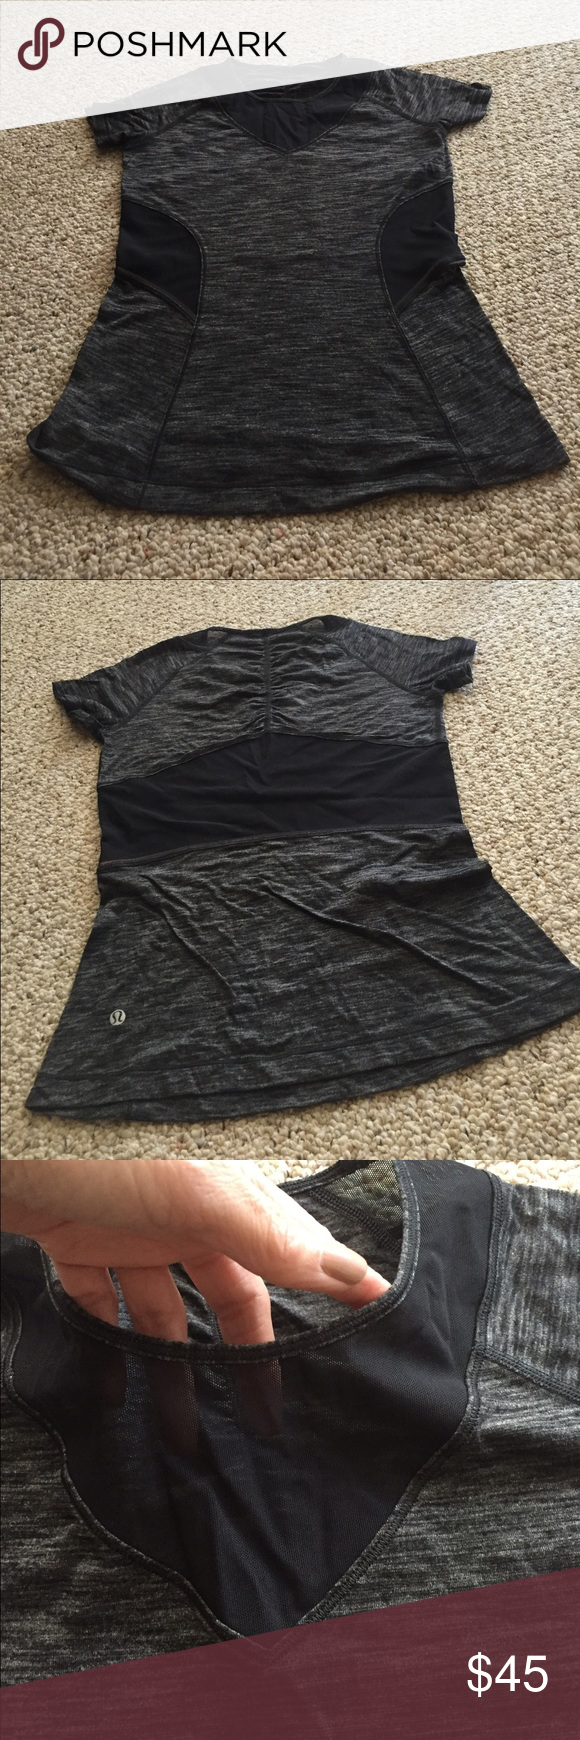 Lululemon shirtsleeve top with mesh inlays Lululemon shirtsleeve black/grey v neck top with black mesh inlays. Wore 1x. Literally BRAND NEW! No TRADES! lululemon athletica Tops